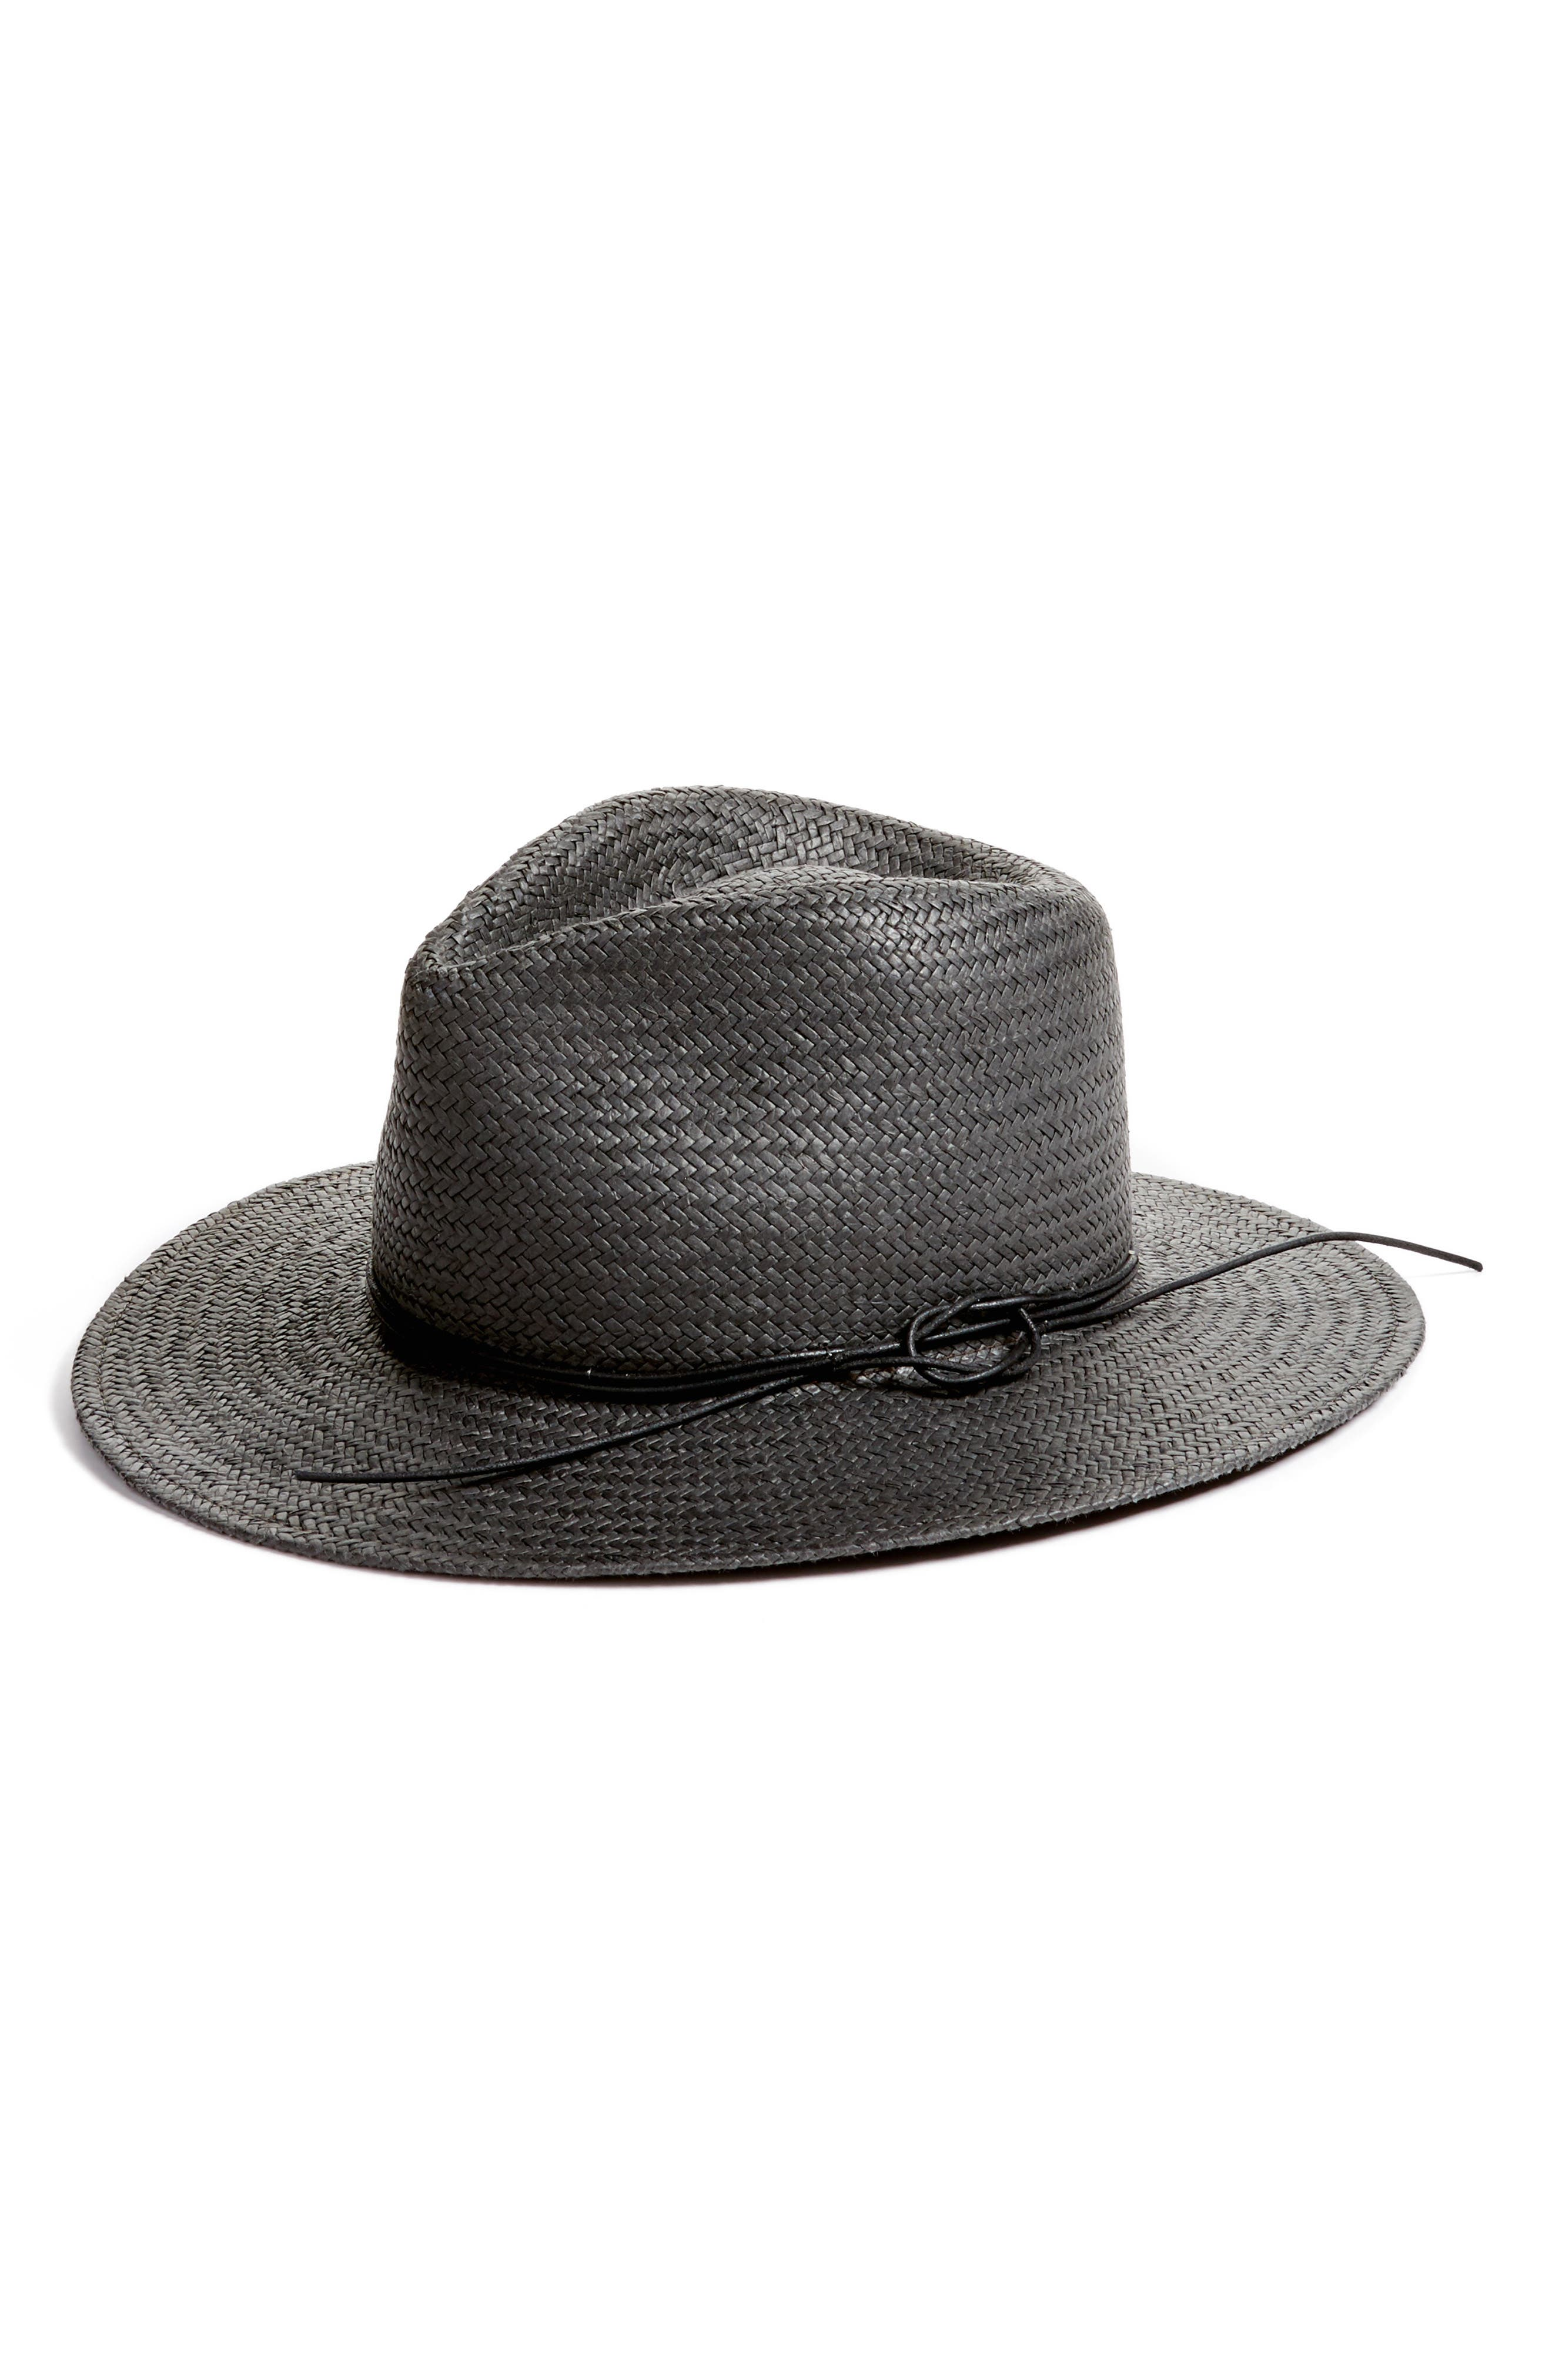 Packable Straw Fedora,                         Main,                         color, 001